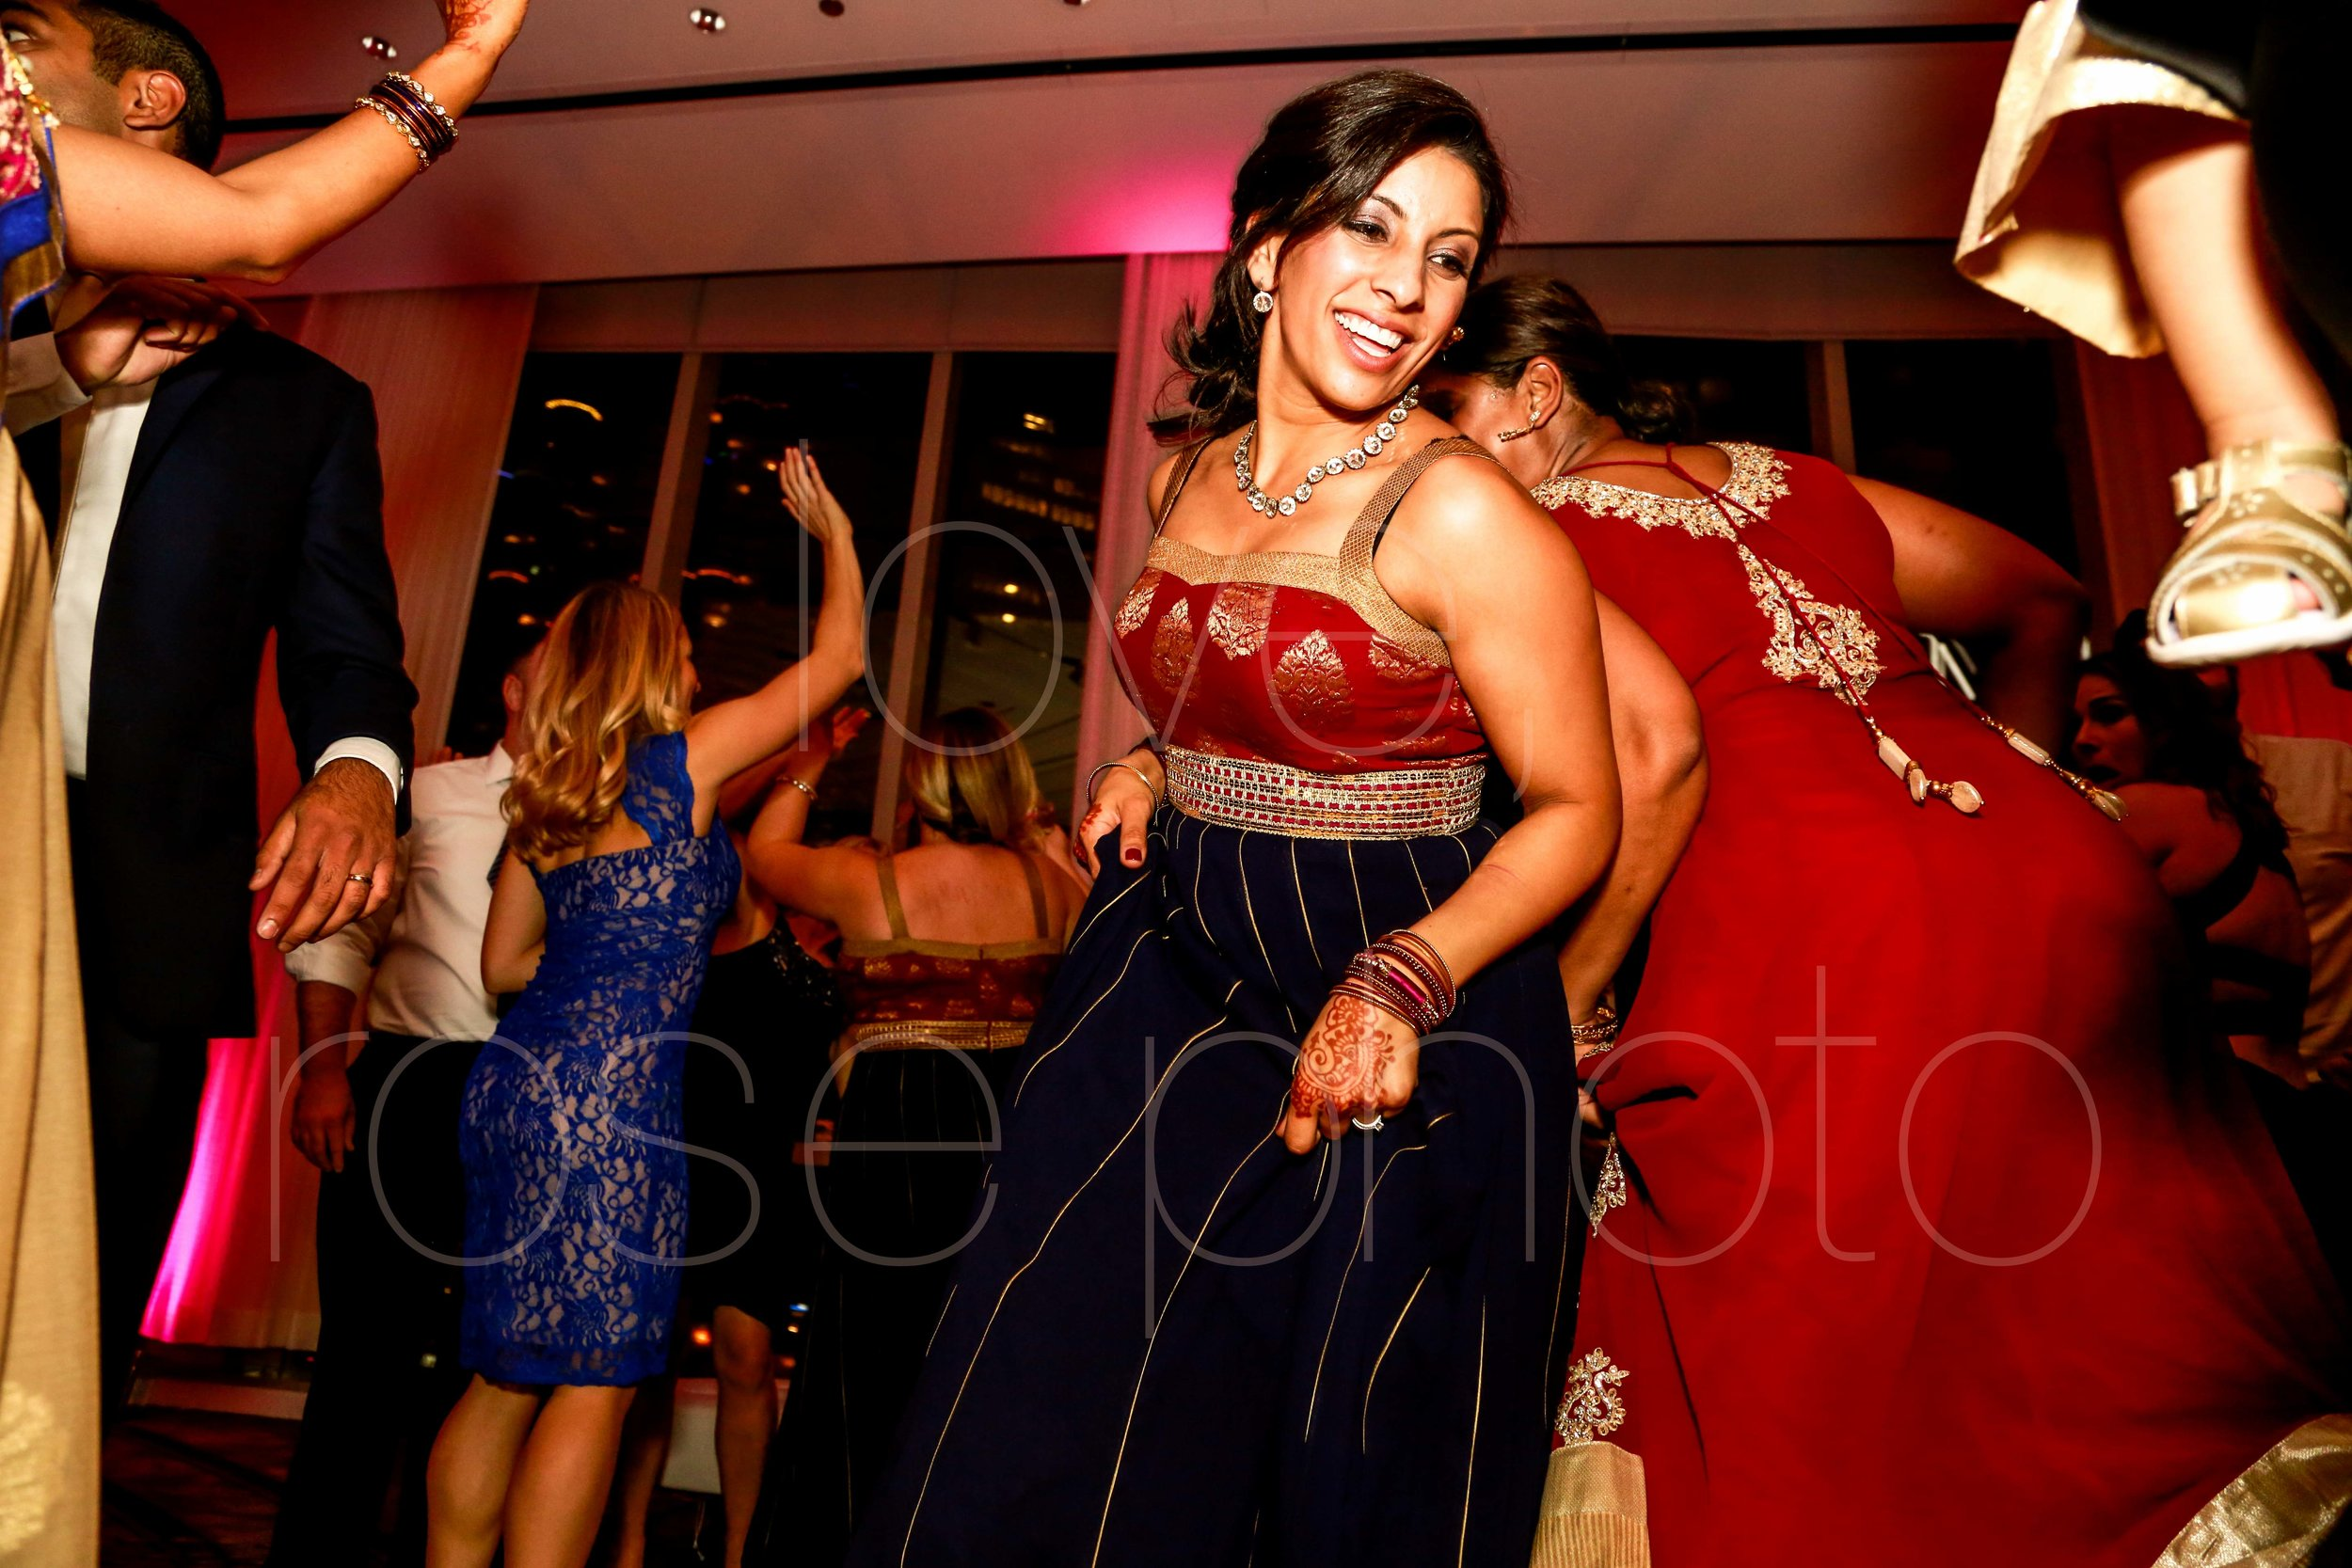 Best of Chicago wedidngphotography LondonHouse Indian wedding -30.jpg